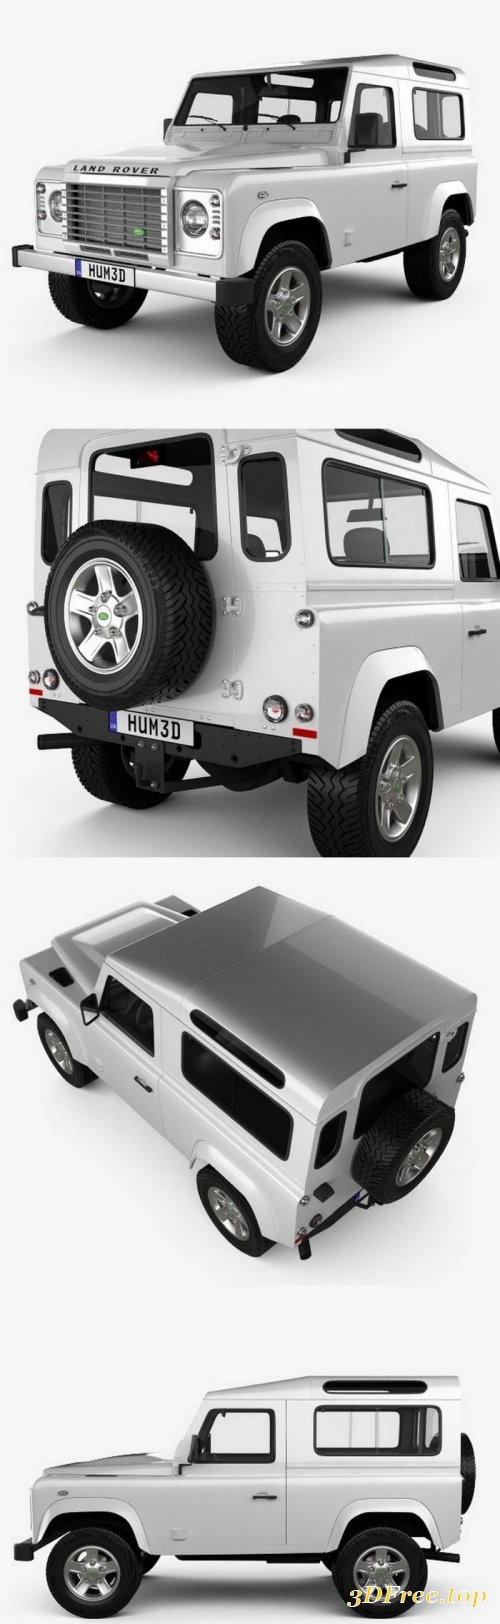 Land Rover Defender 90 Station Wagon 2011 3D Model